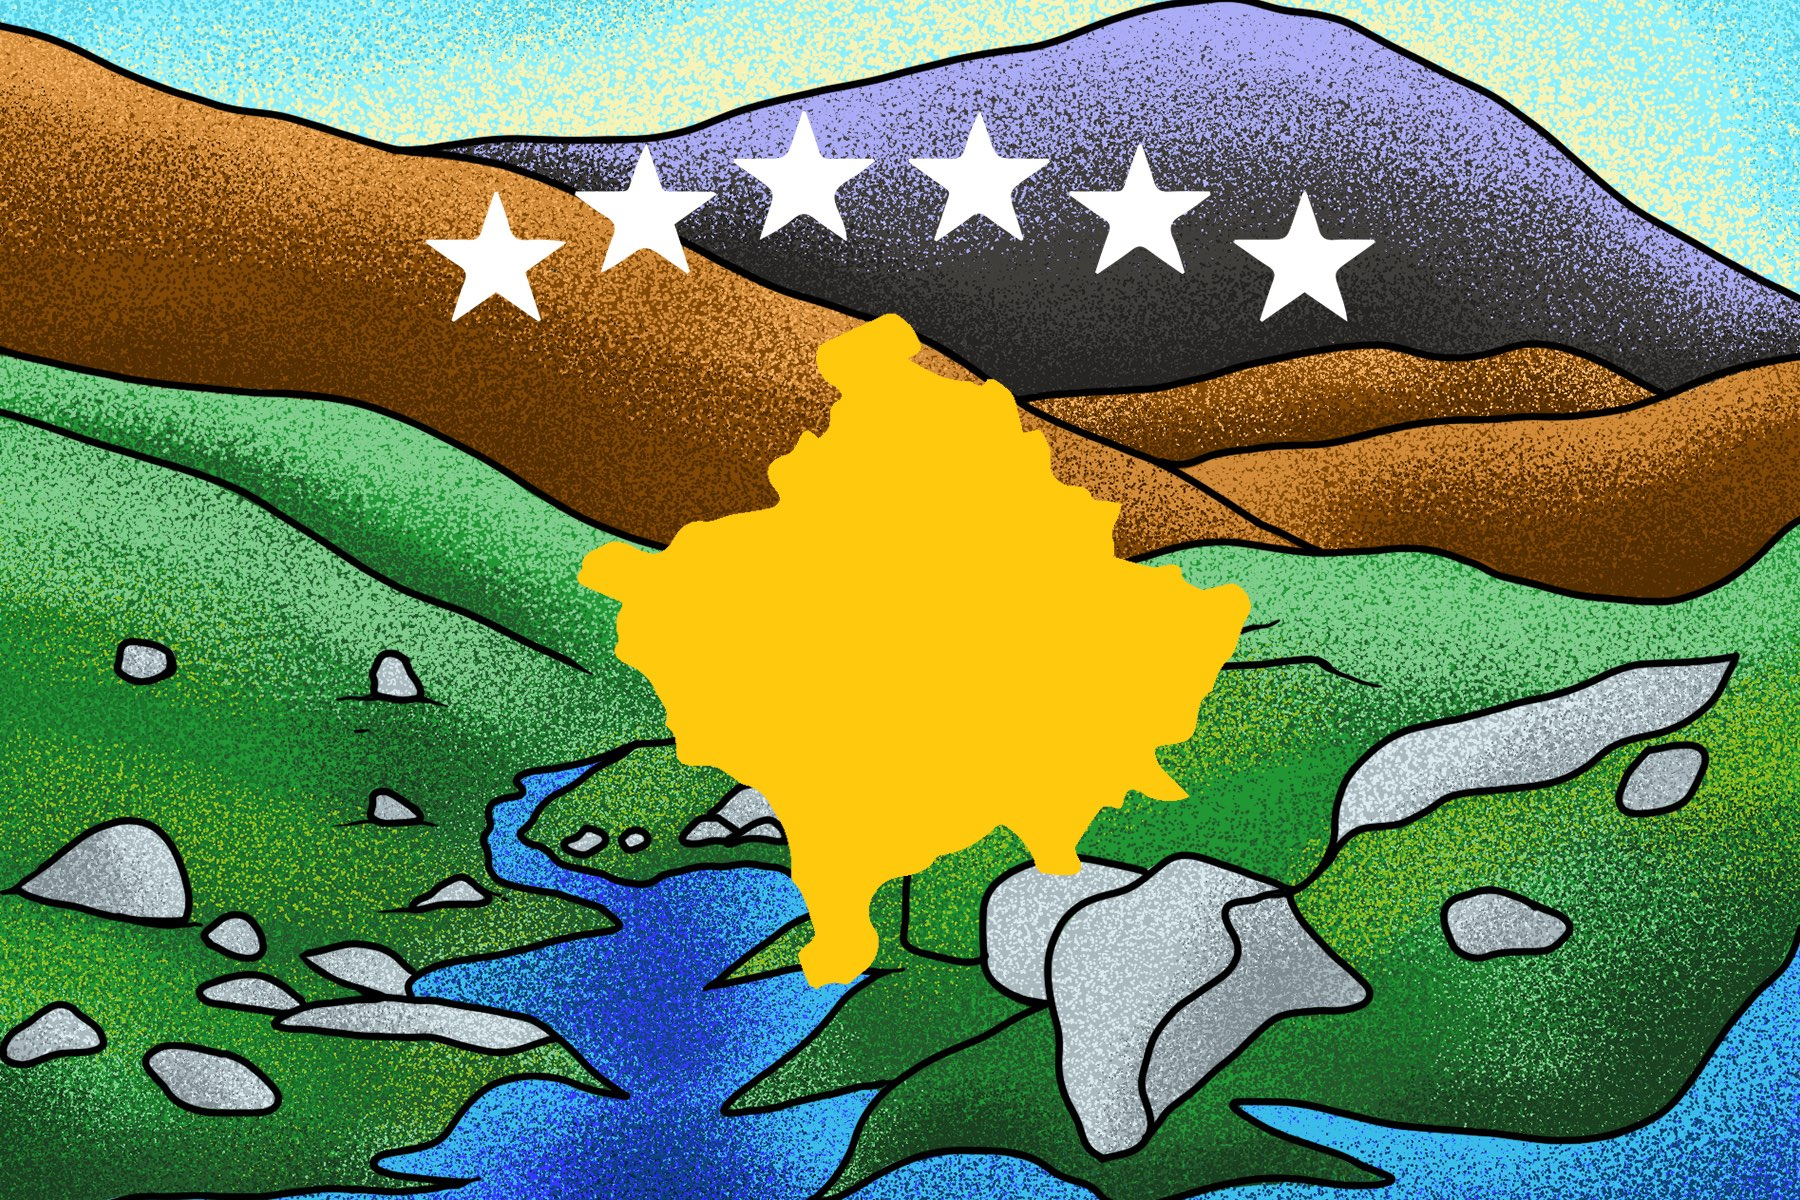 Illustration by Alicia Paauwe for an article on Kosovo